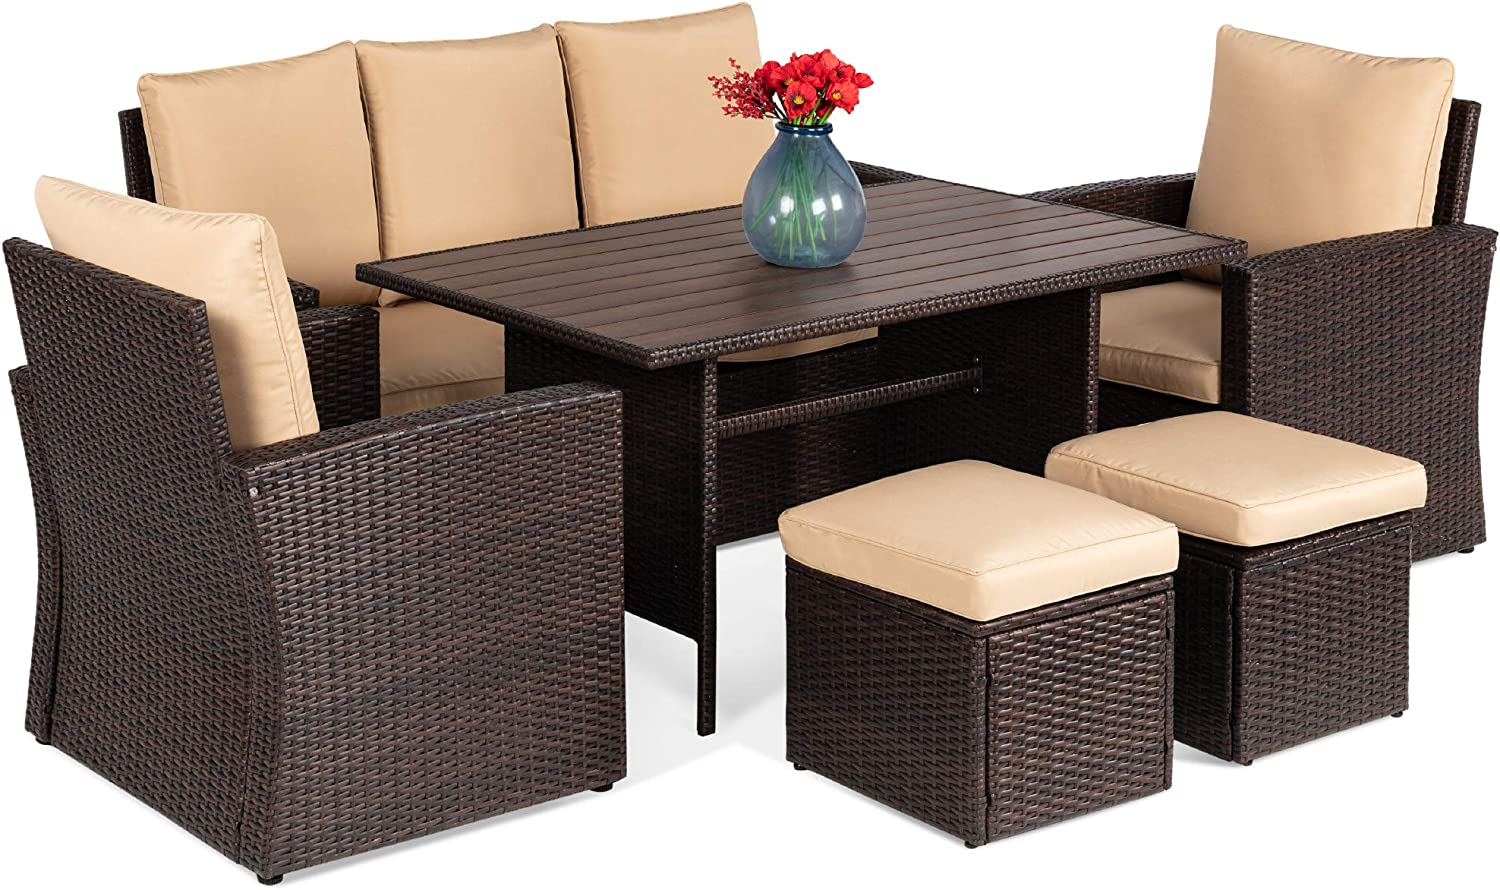 Best Choice Products 7-Seater Conversational Wicker Sofa Dining Table, Outdoor Patio Furniture Set w/Modular 6 Pieces, Cushions, Protective Cover Included - Brown/Beige